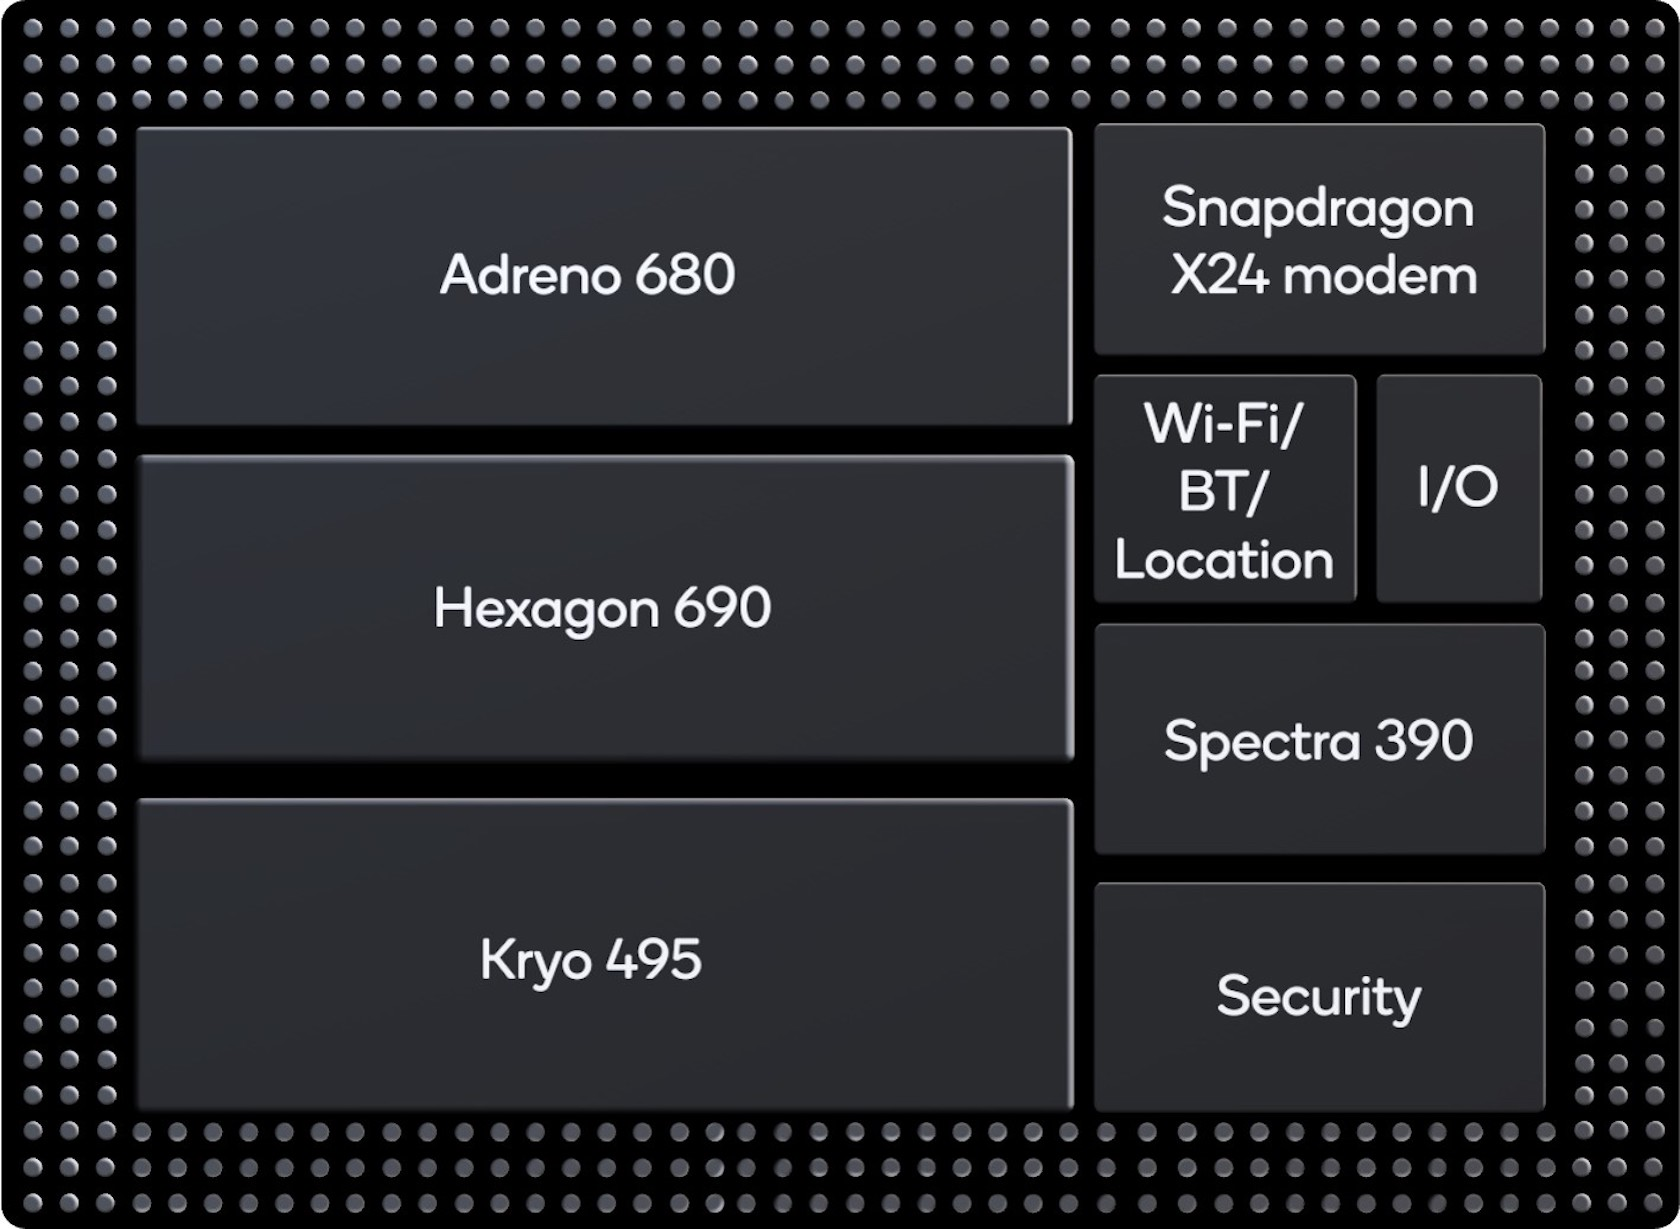 Qualcomm Announces Snapdragon 855 With 3x AI Performance